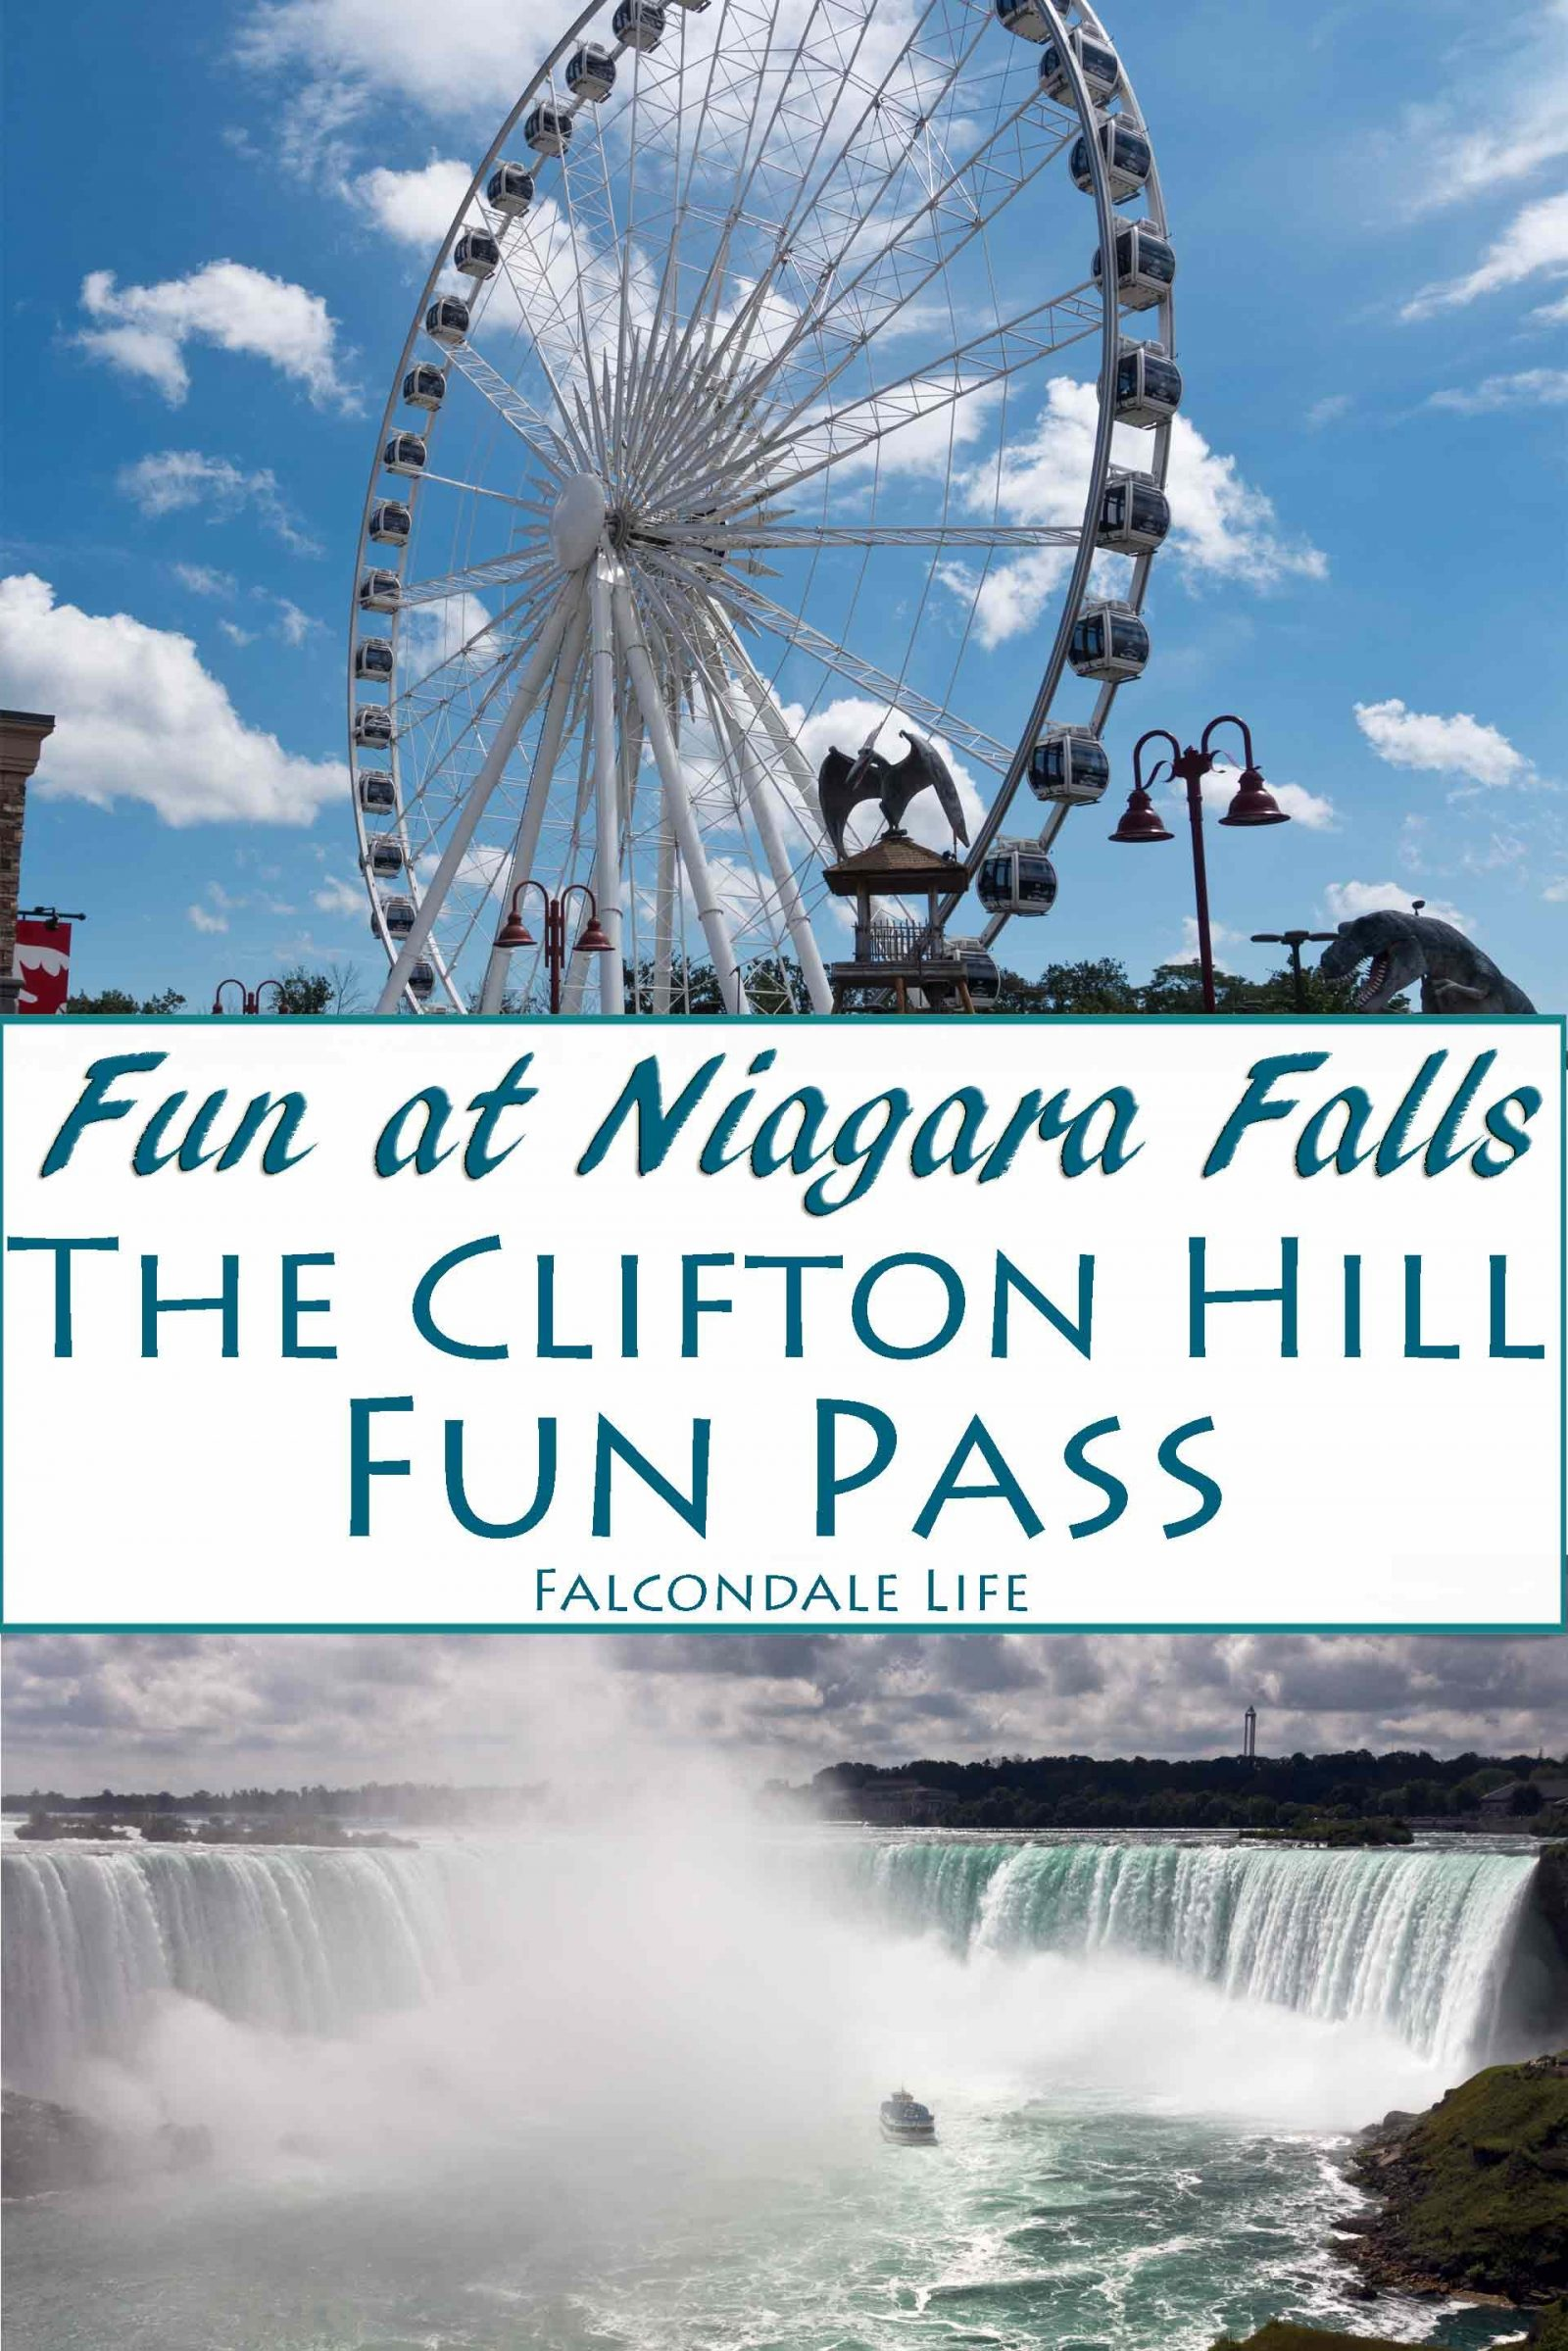 All the fun of the falls with the Clifton Hill Fun Pass, Niagara, Canada on Falcondale Life blog. A visit to Niagara Falls is an all-round resort experience with the Clifton Hill Fun Pass. Six fun attractions in one value ticket. Full review and photos. The Niagara Sky Wheel gives a magnificent view of Niagara Falls. Included in the Clifton Hill Fun Pass Ticket along with five other attractions in one great value ticket.